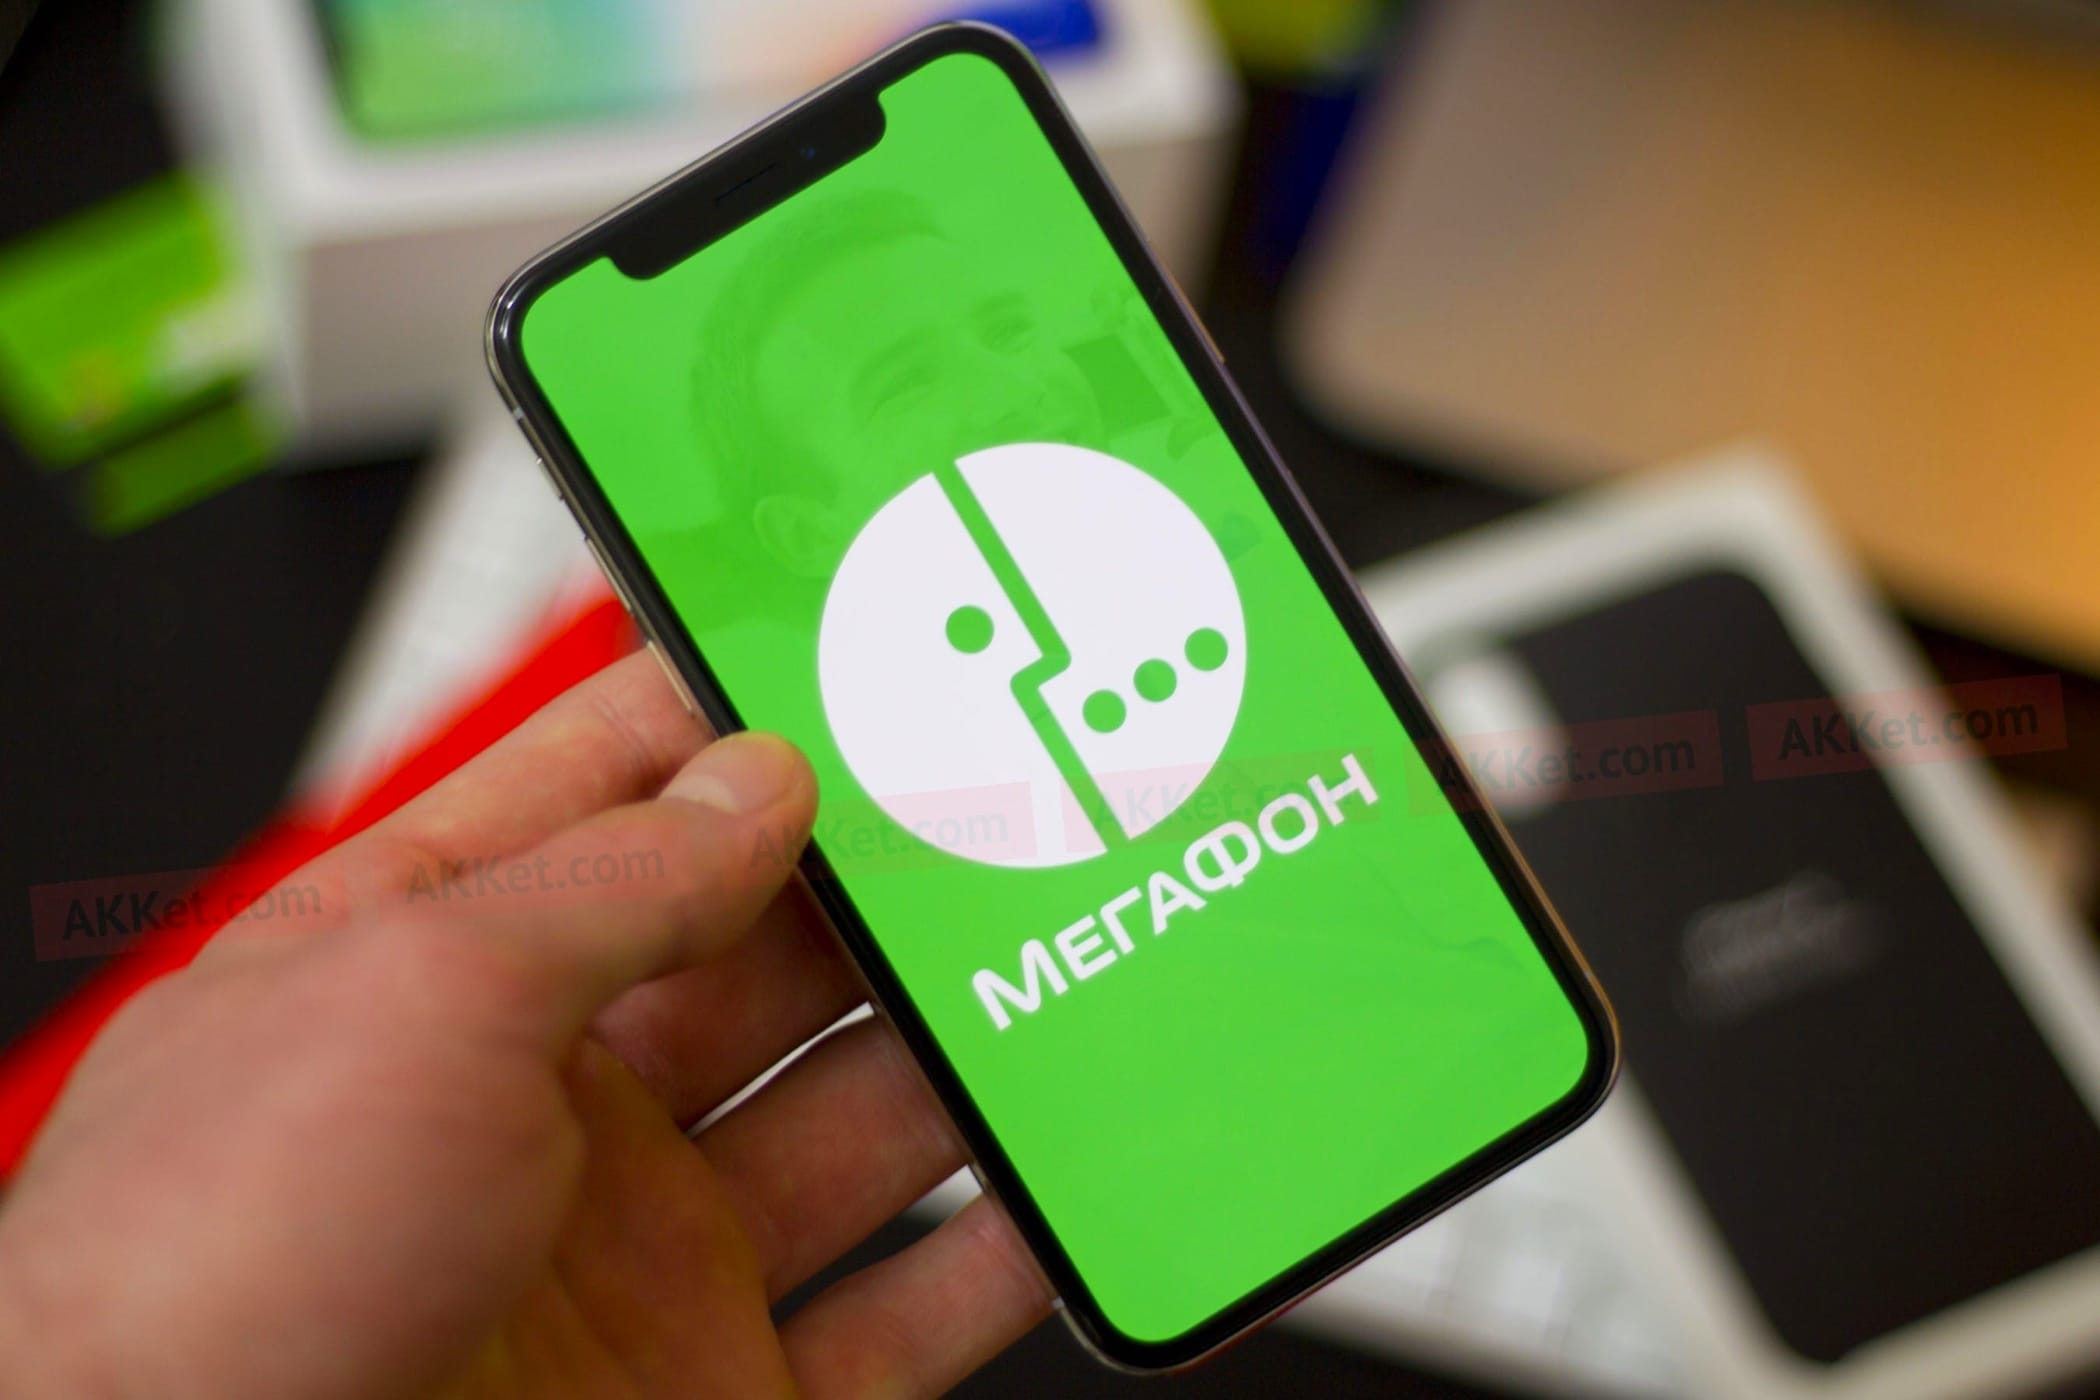 Megafon: where to complain about the quality of communication or the Internet